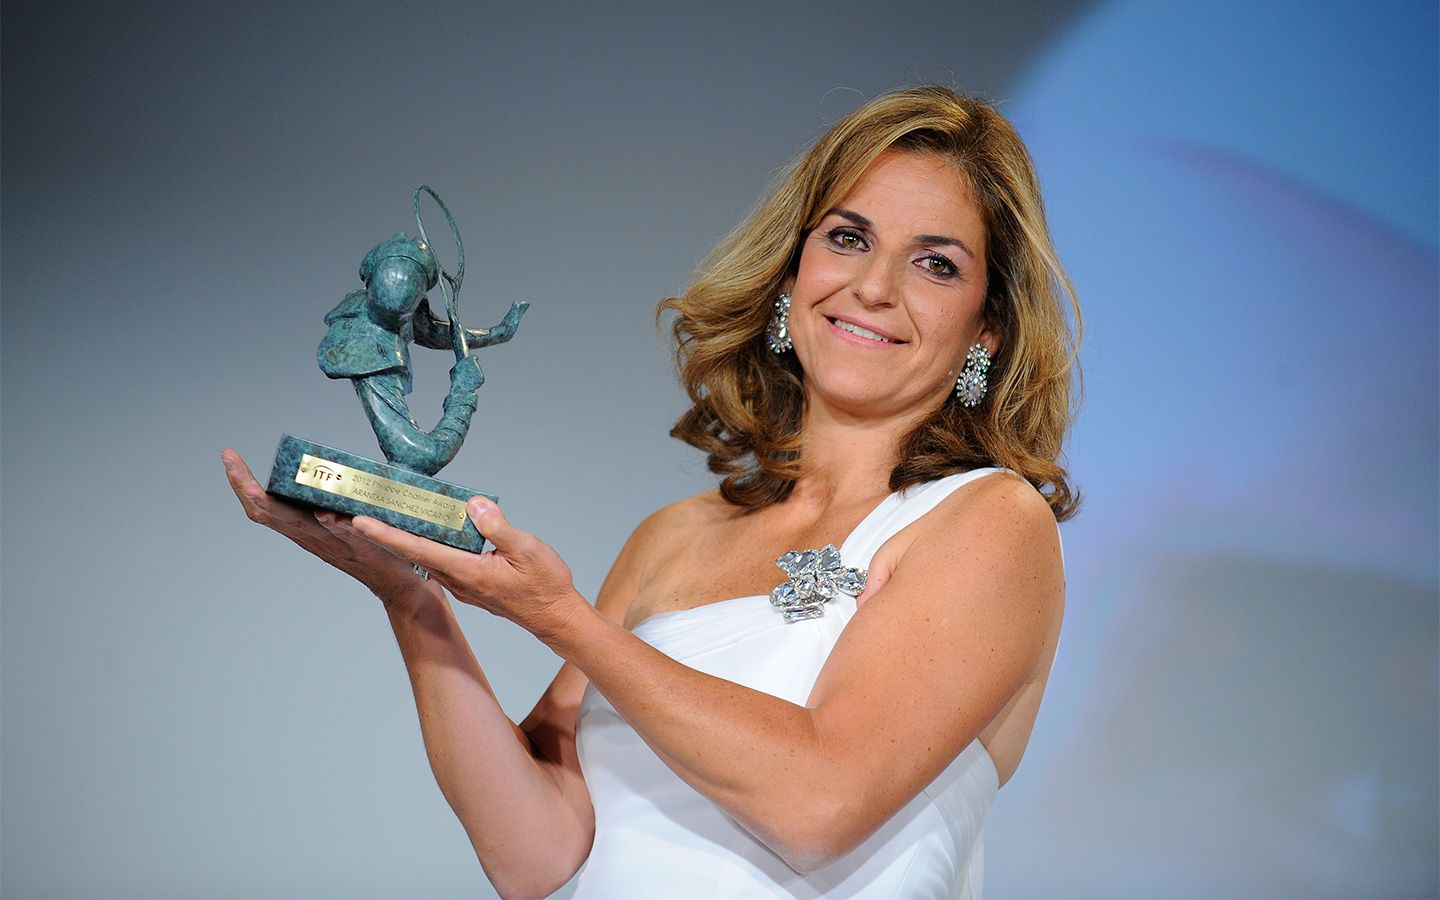 Arantxa Sánchez Vicario took home the Philippe Chatrier award at